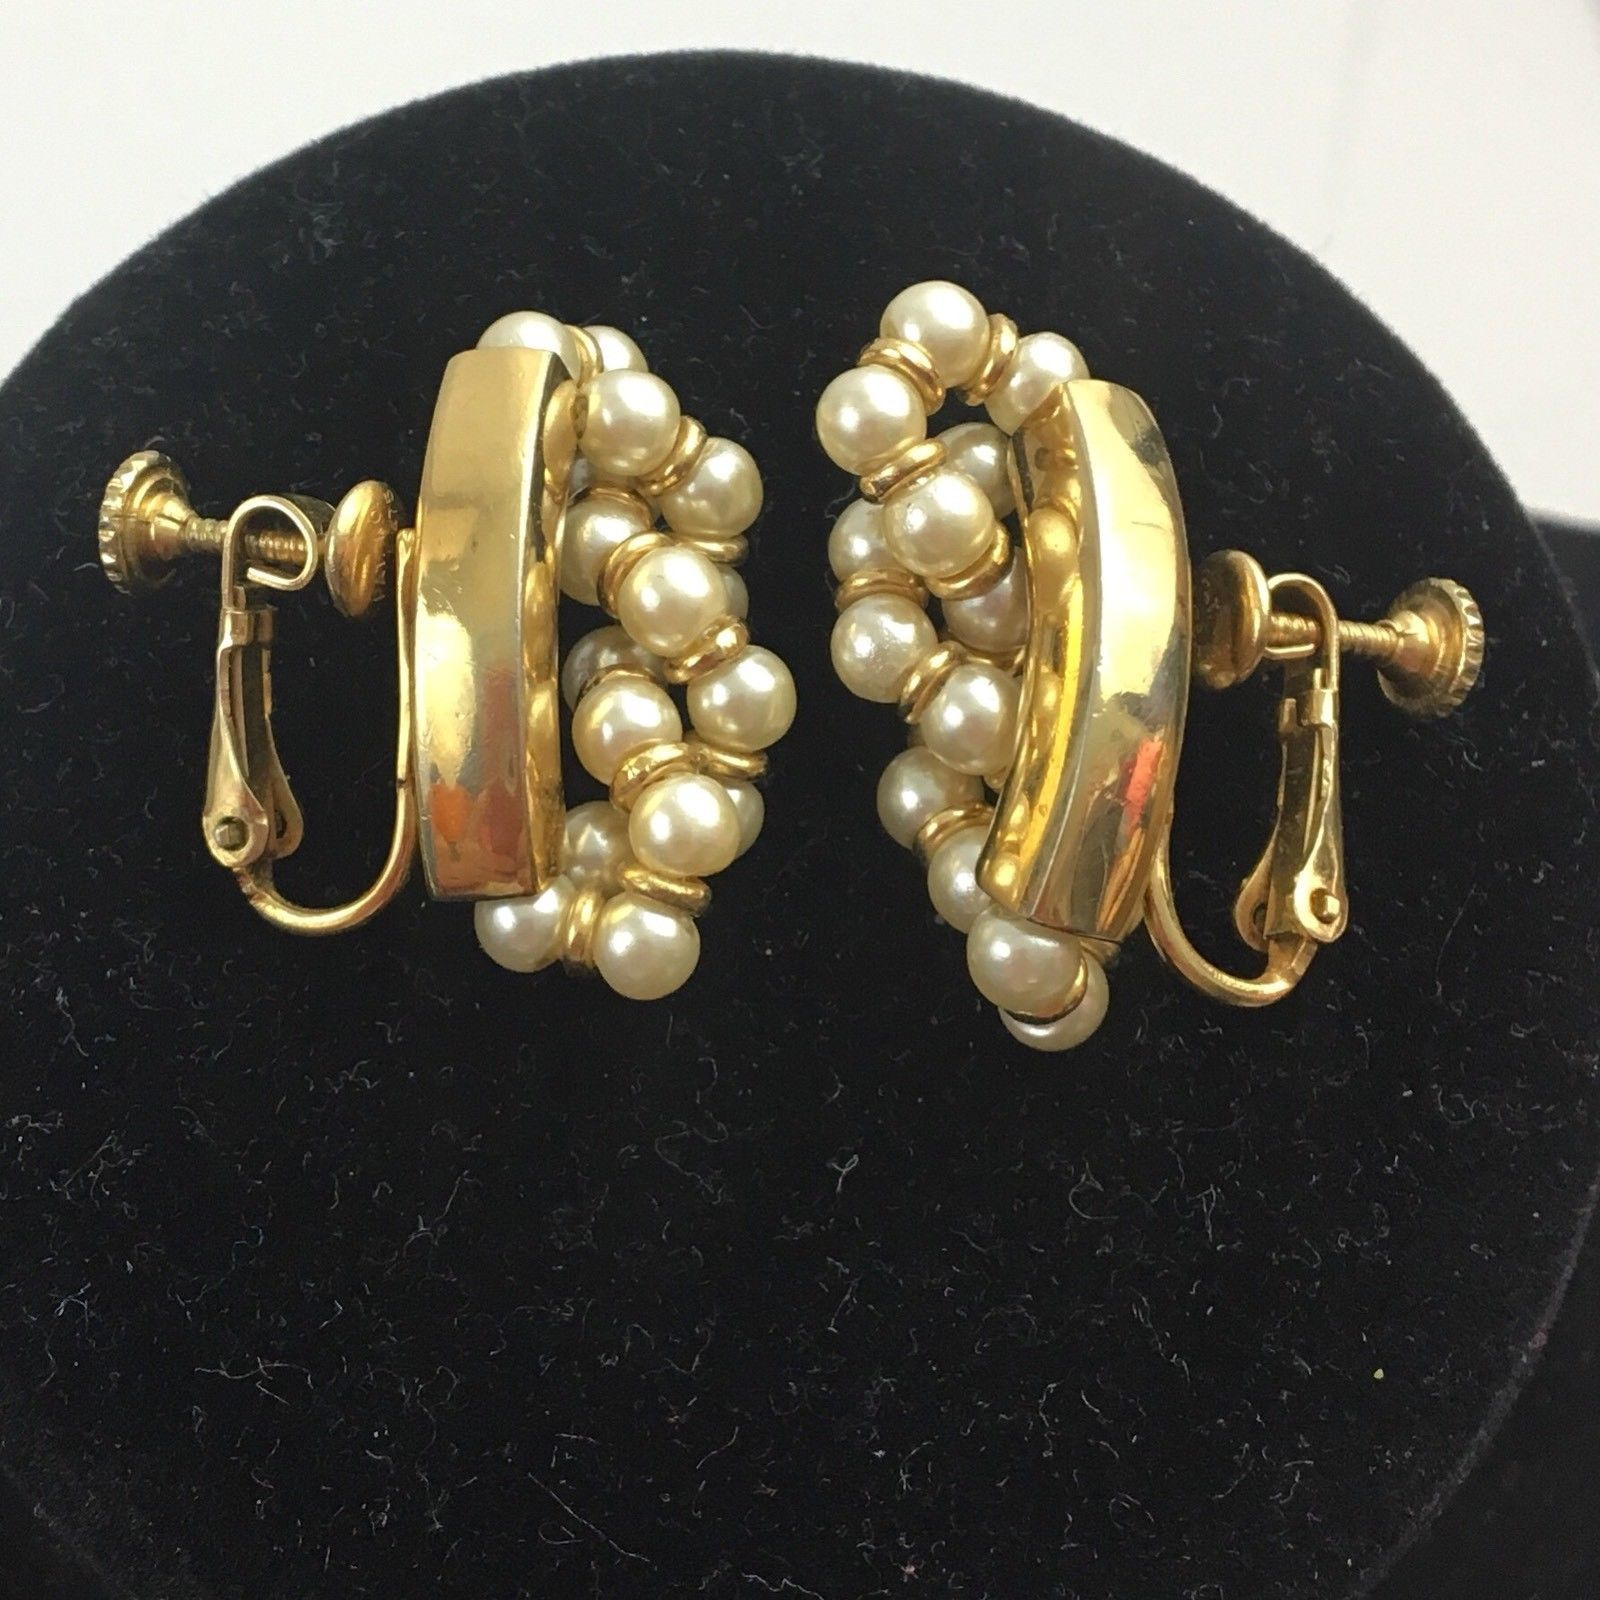 4236908dcf39bd S l1600. S l1600. Previous. Vintage Napier Faux Pearl Cluster Screw Back  Clip Earrings Gold Tone Signed